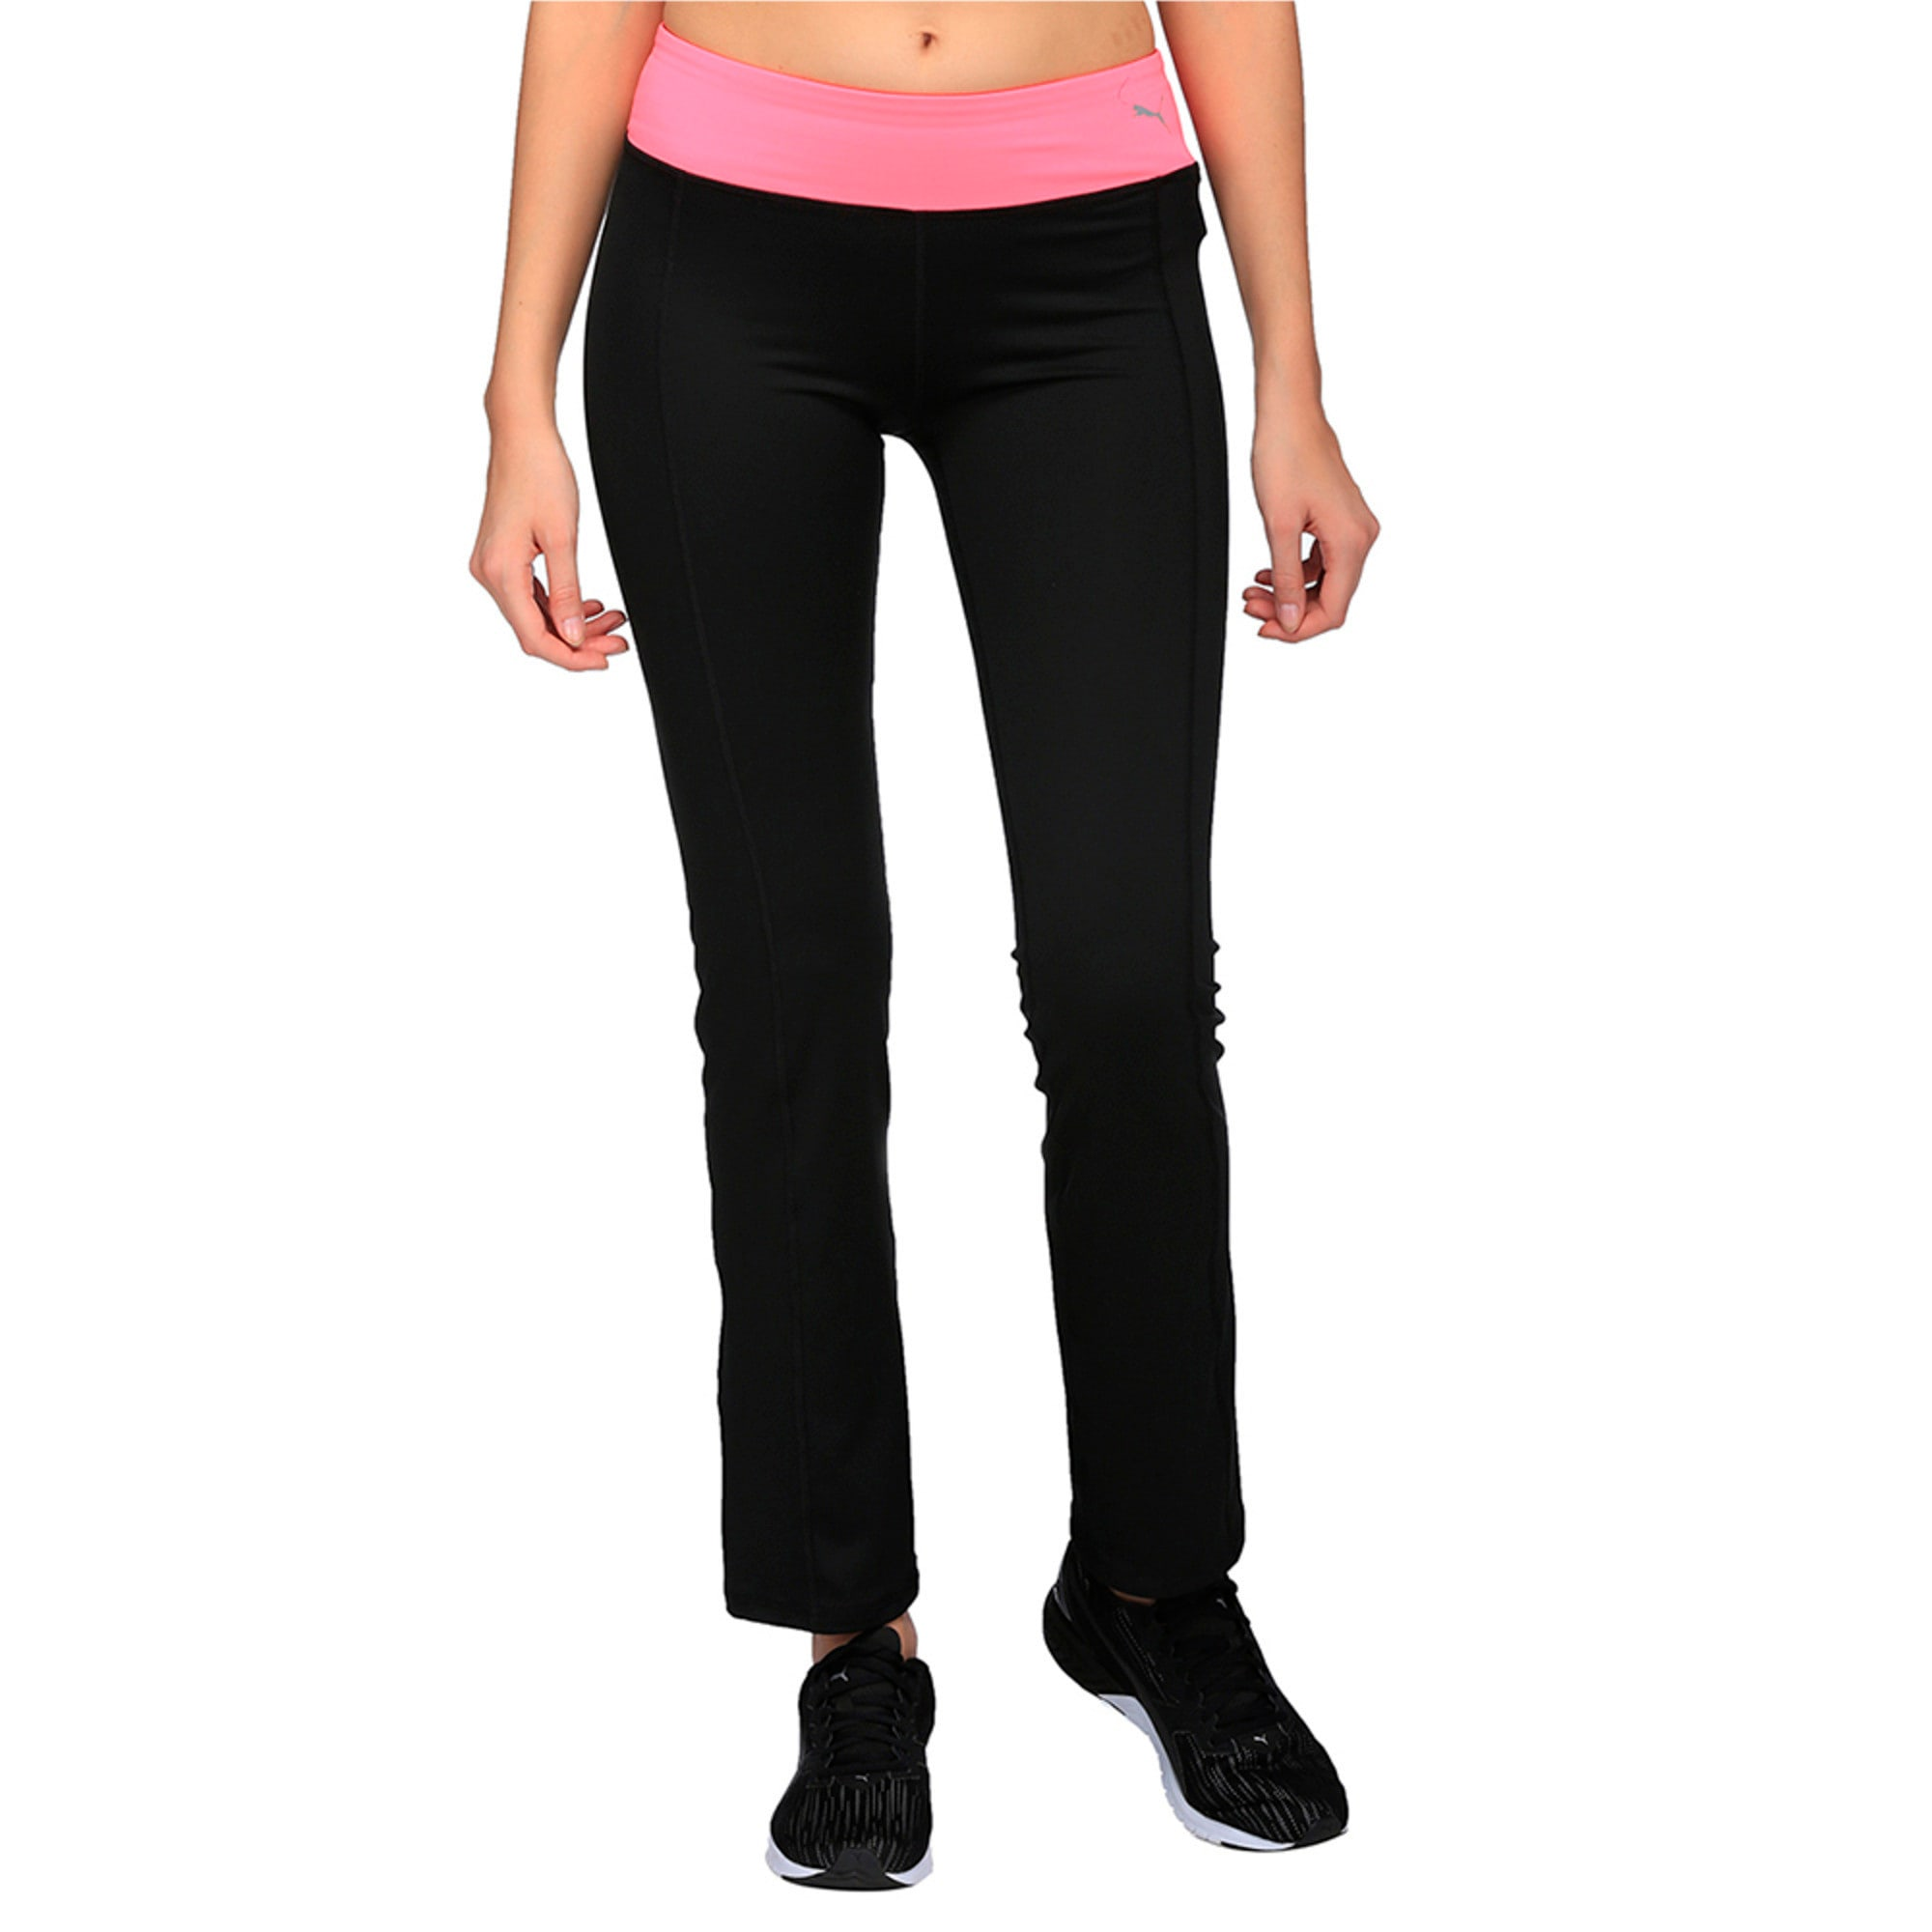 Thumbnail 2 of Training Women's Essential Straight Leg Pants, Puma Black-KNOCKOUT PINK, medium-IND